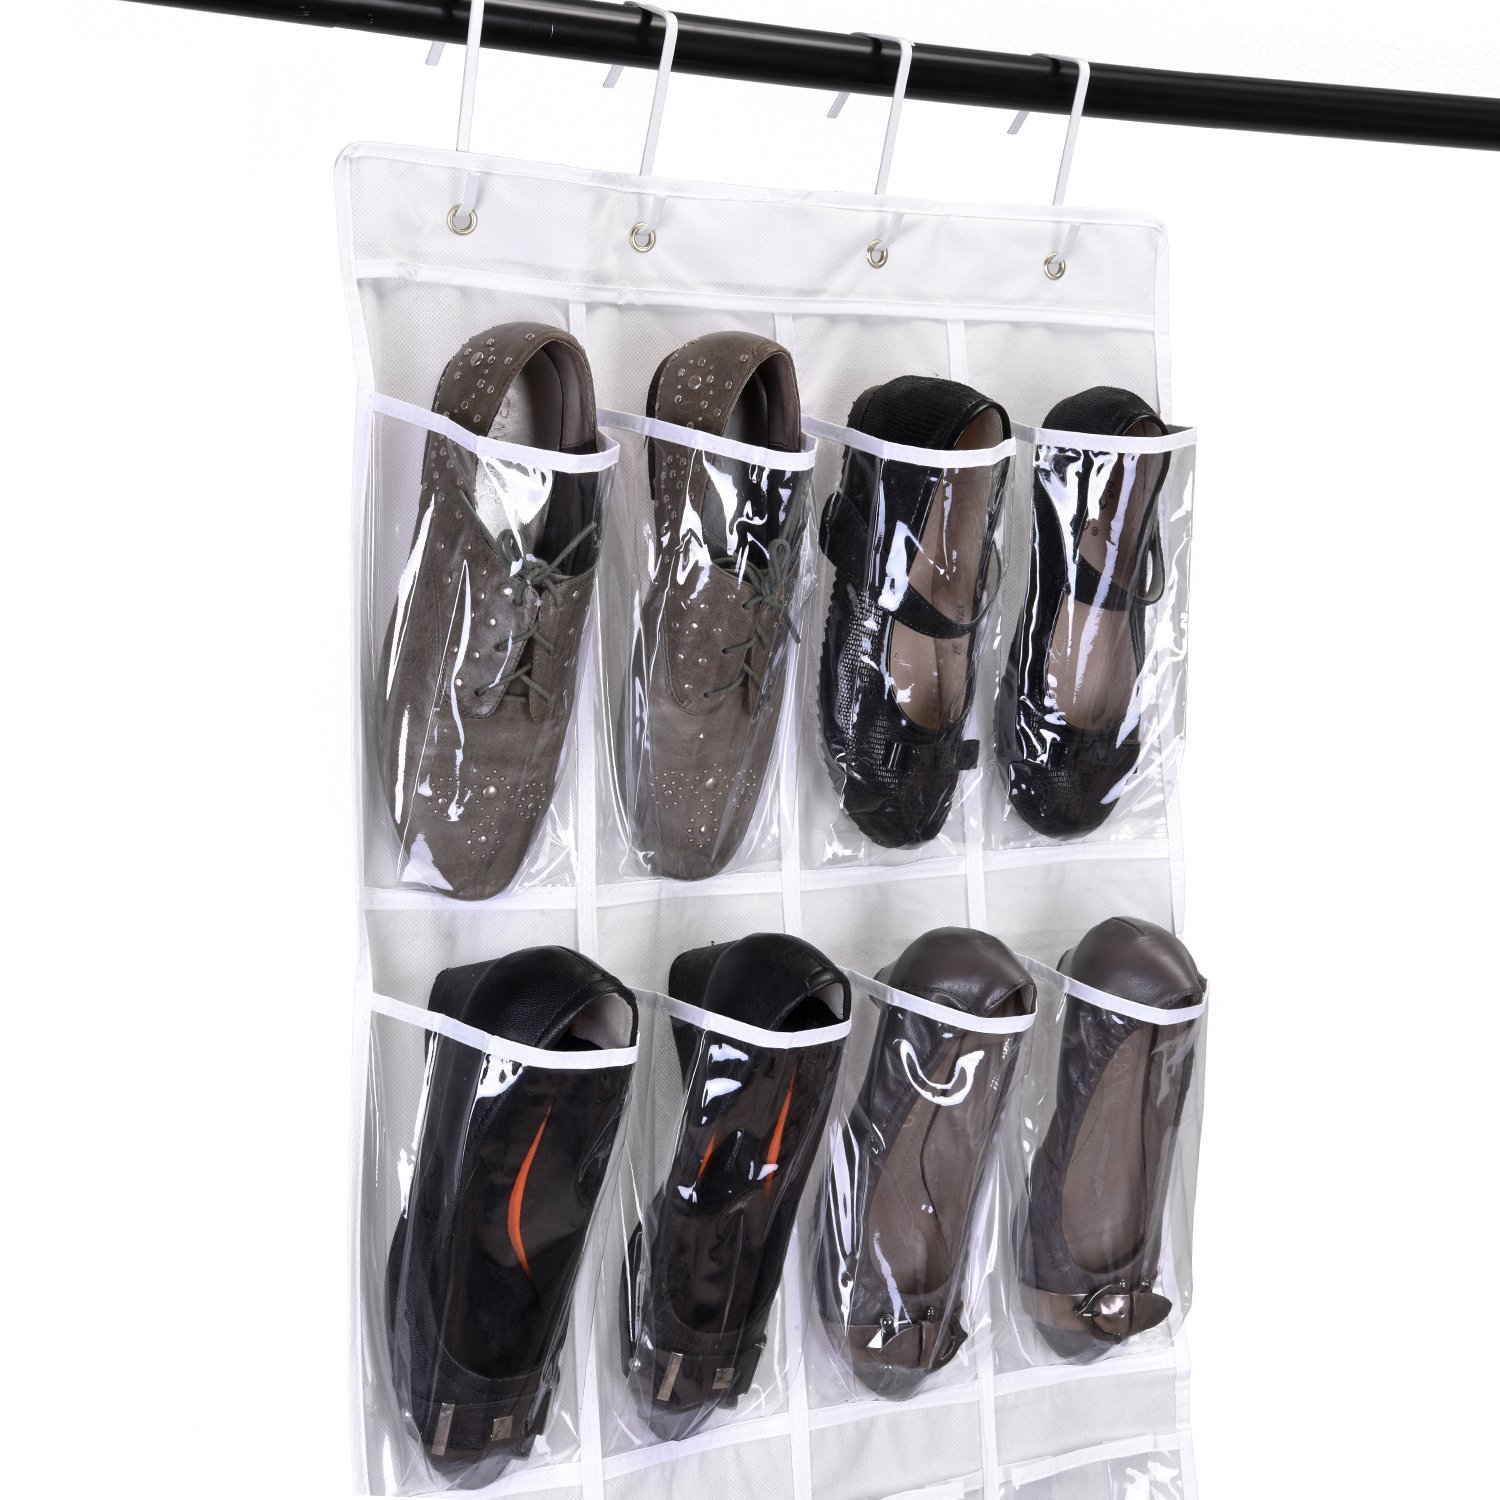 64 Inches High MaidMAX Over The Door Hanging Shoe Organizer with 24 Clear Pockets and 4 Metal Hooks